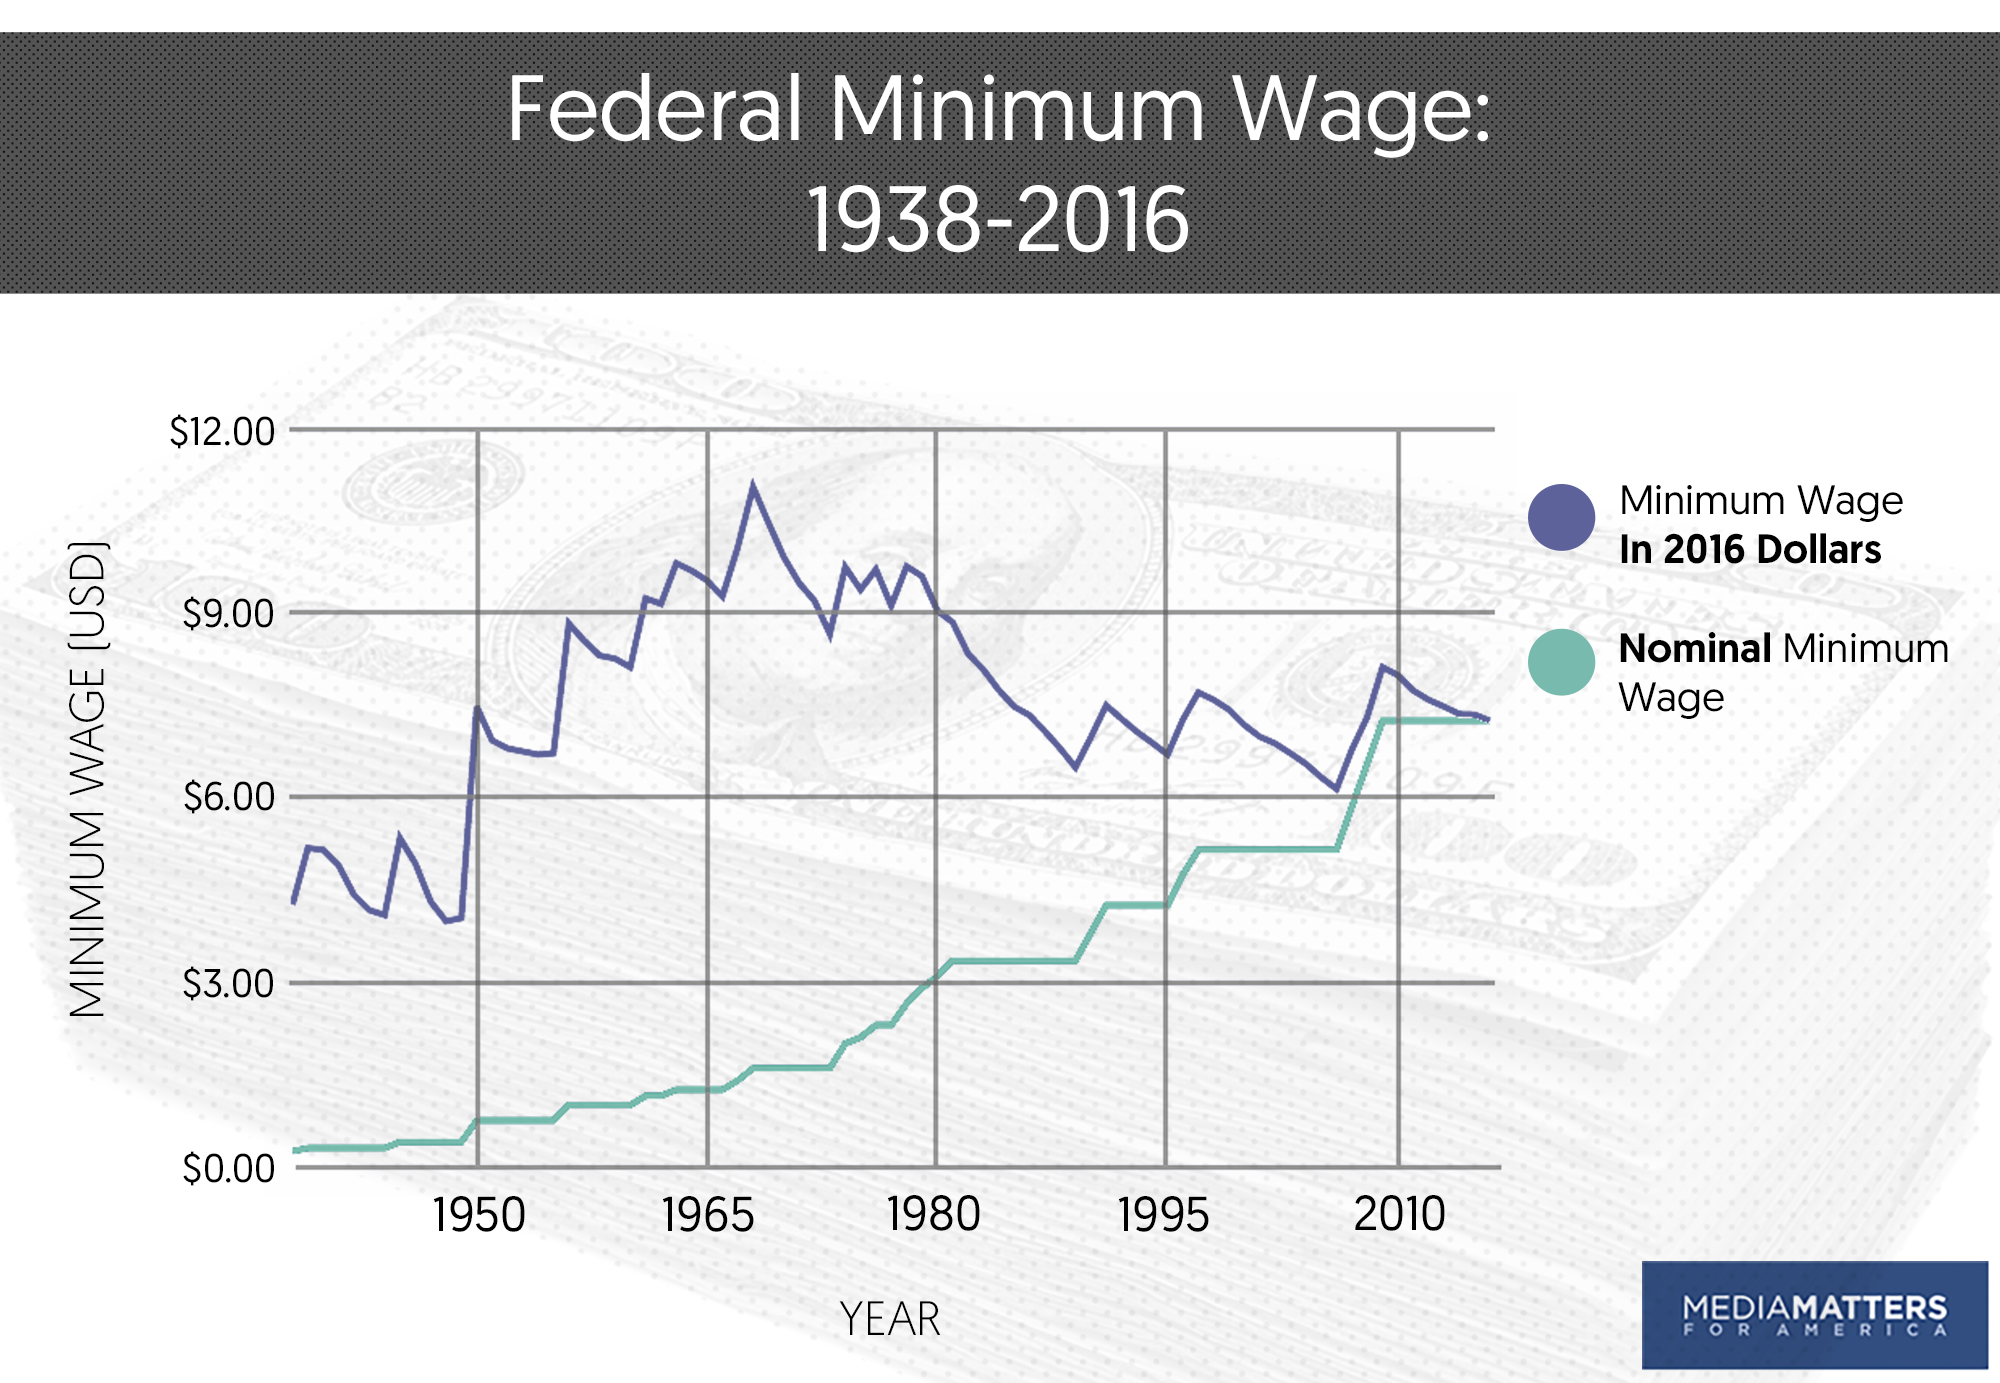 myths facts the minimum wage since it was last increased in 2009 the federal minimum wage has lost more than 10 percent of its relative purchasing power